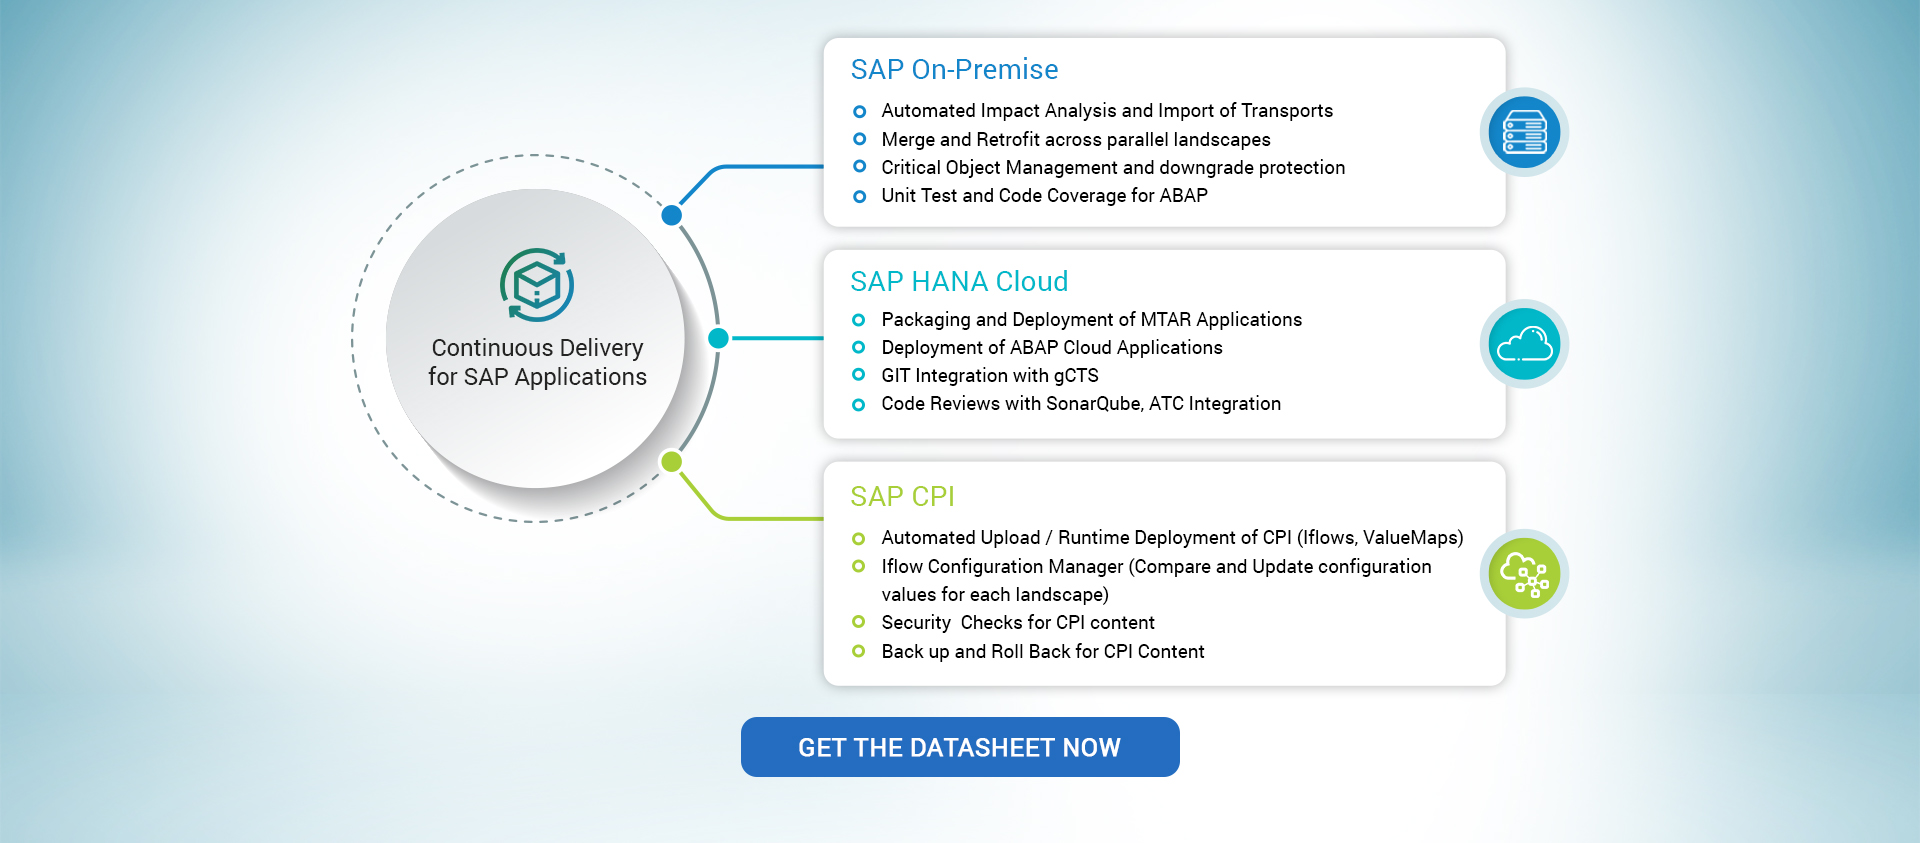 Continuous Delivery for SAP Applications